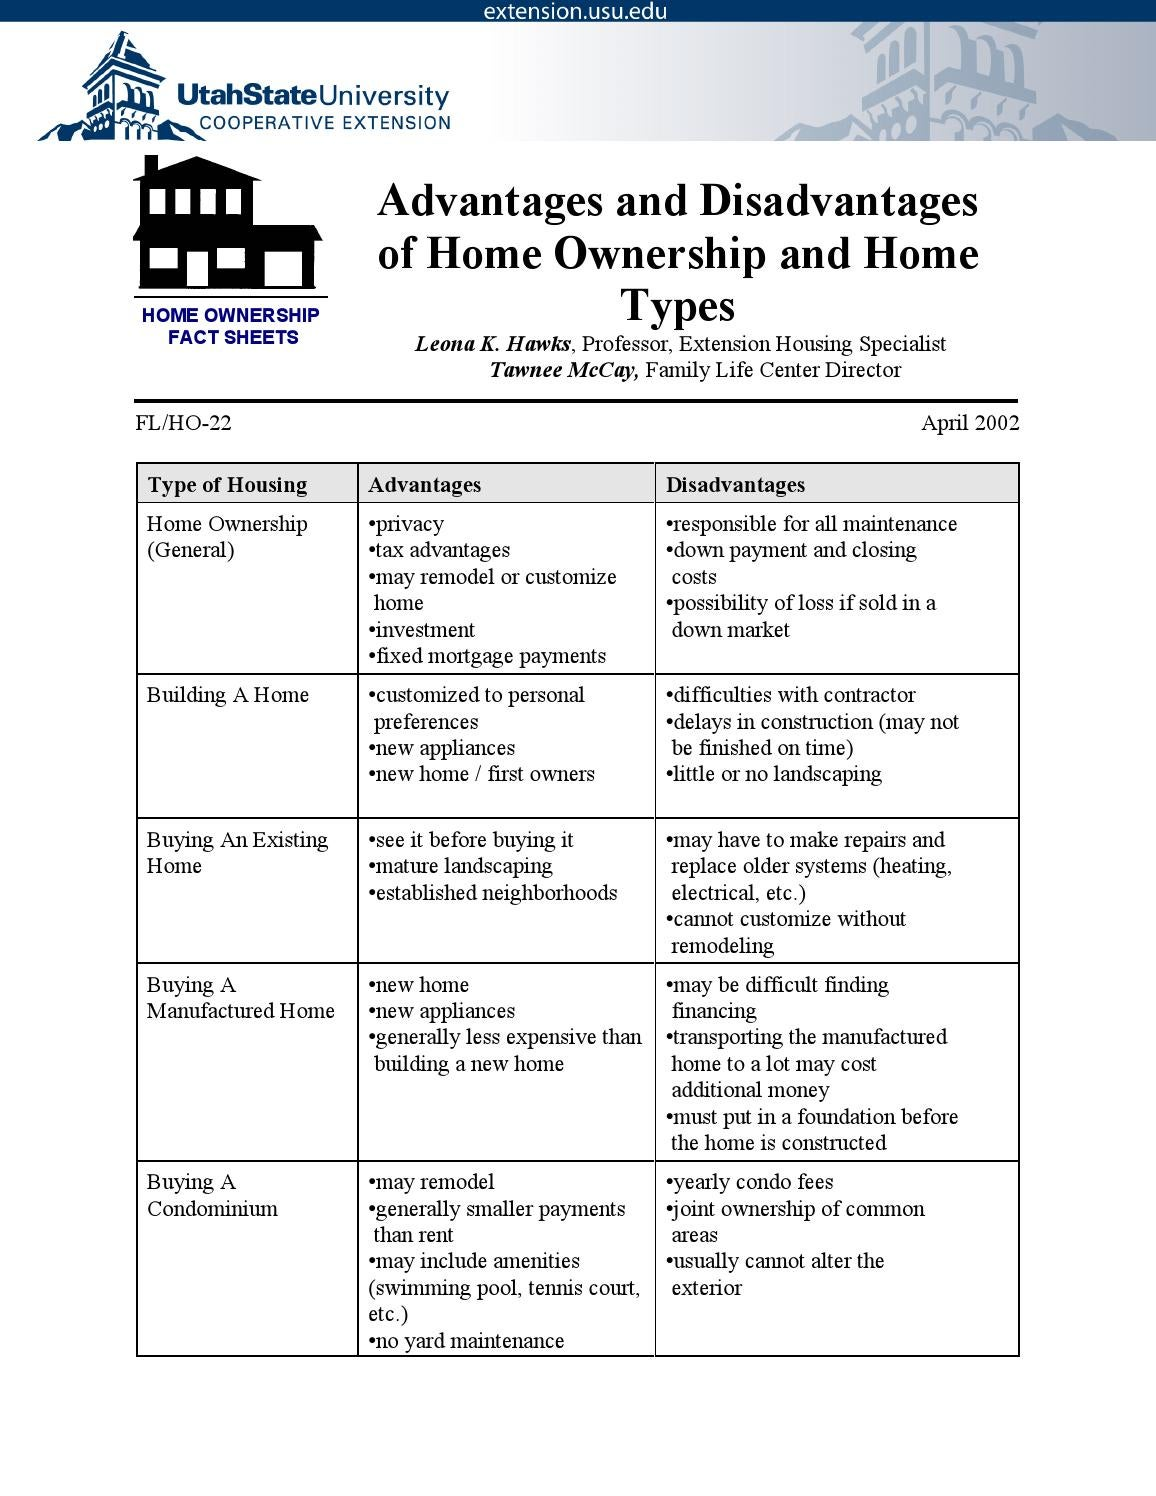 Advantages and Disadvantages of Home Ownership and Home